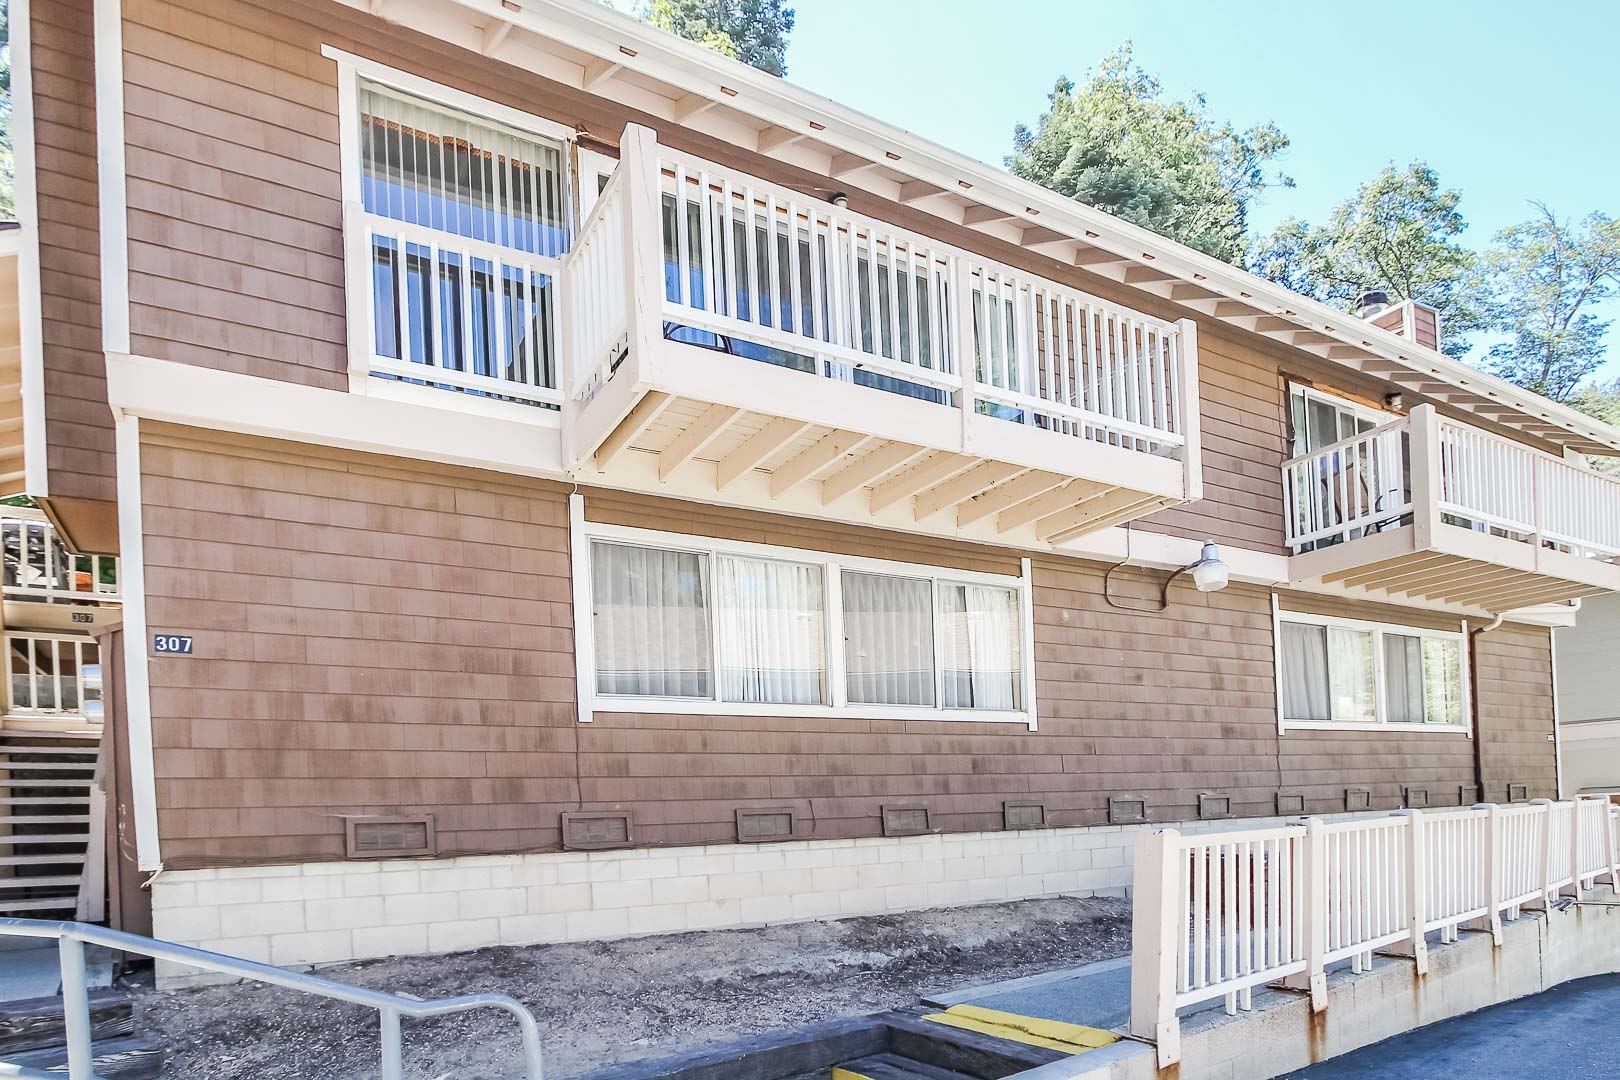 An outside view of the units at VRI's Lake Arrowhead Chalets in California.